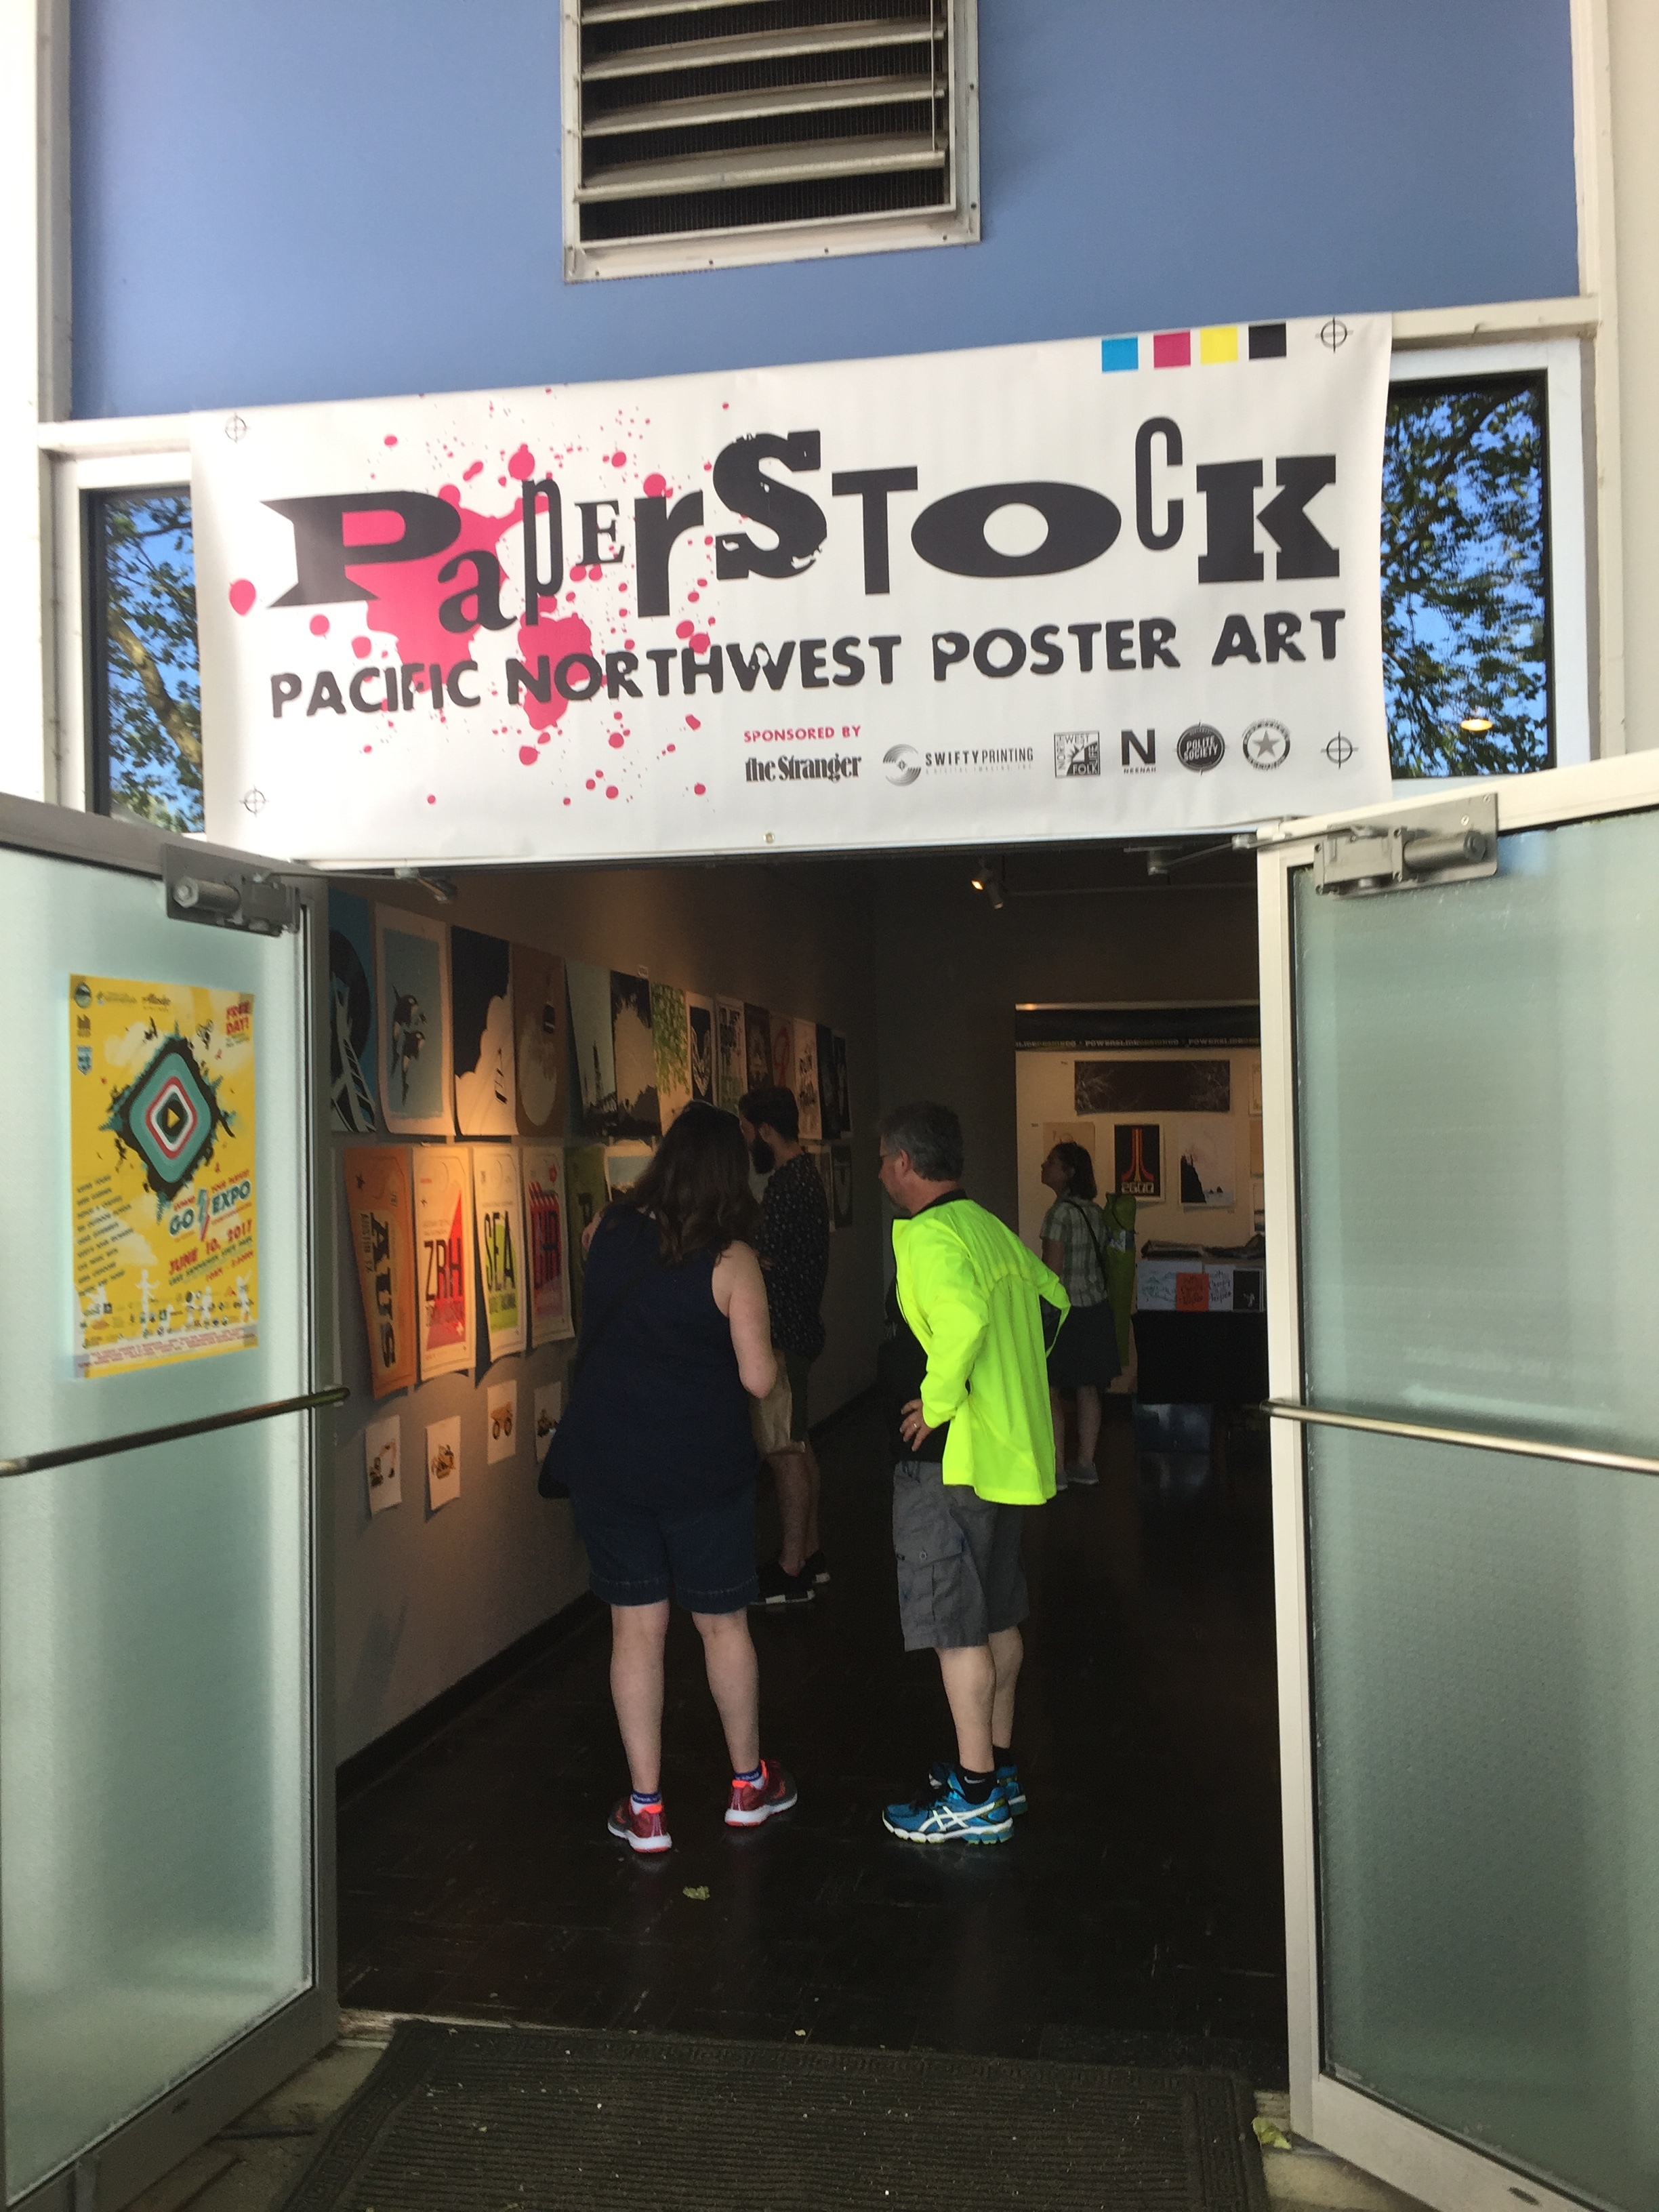 Paperstock-pacific-northwest-poster-art-nw-folklife-2017-seattle-entrance.JPG